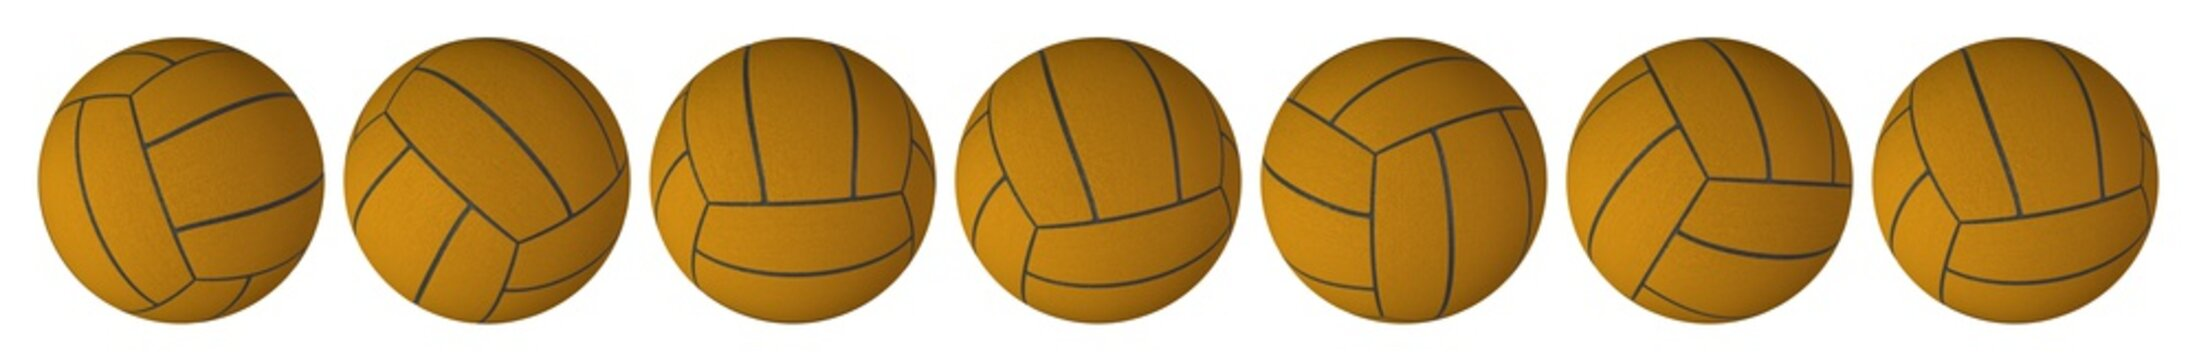 Water Polo Ball Various Positions